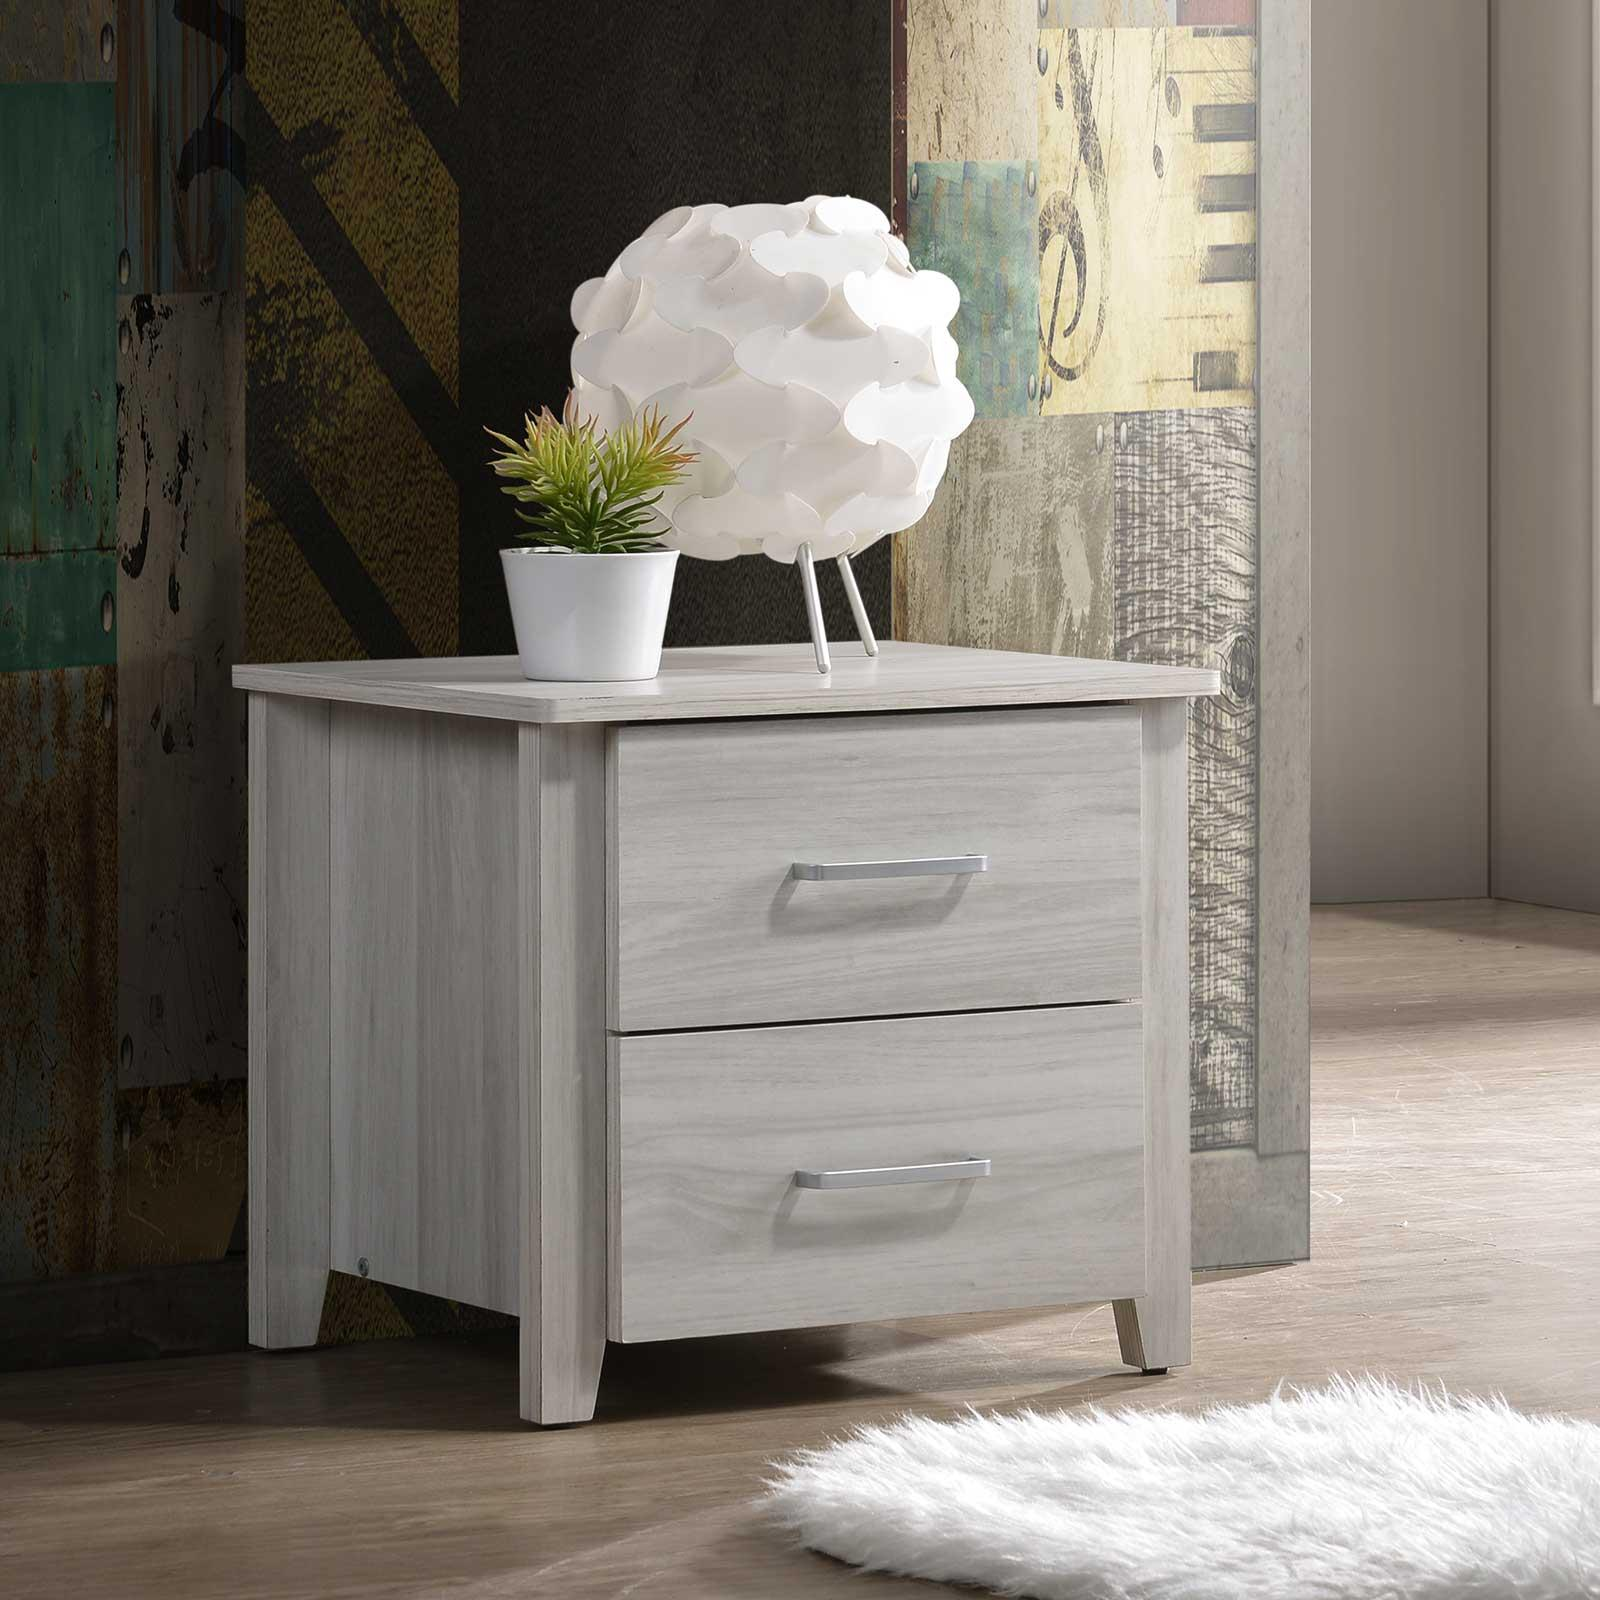 Scandinavian Bedside Table Night Stand Storage Drawers Bedroom Side ⭐E-LIVING Furniture